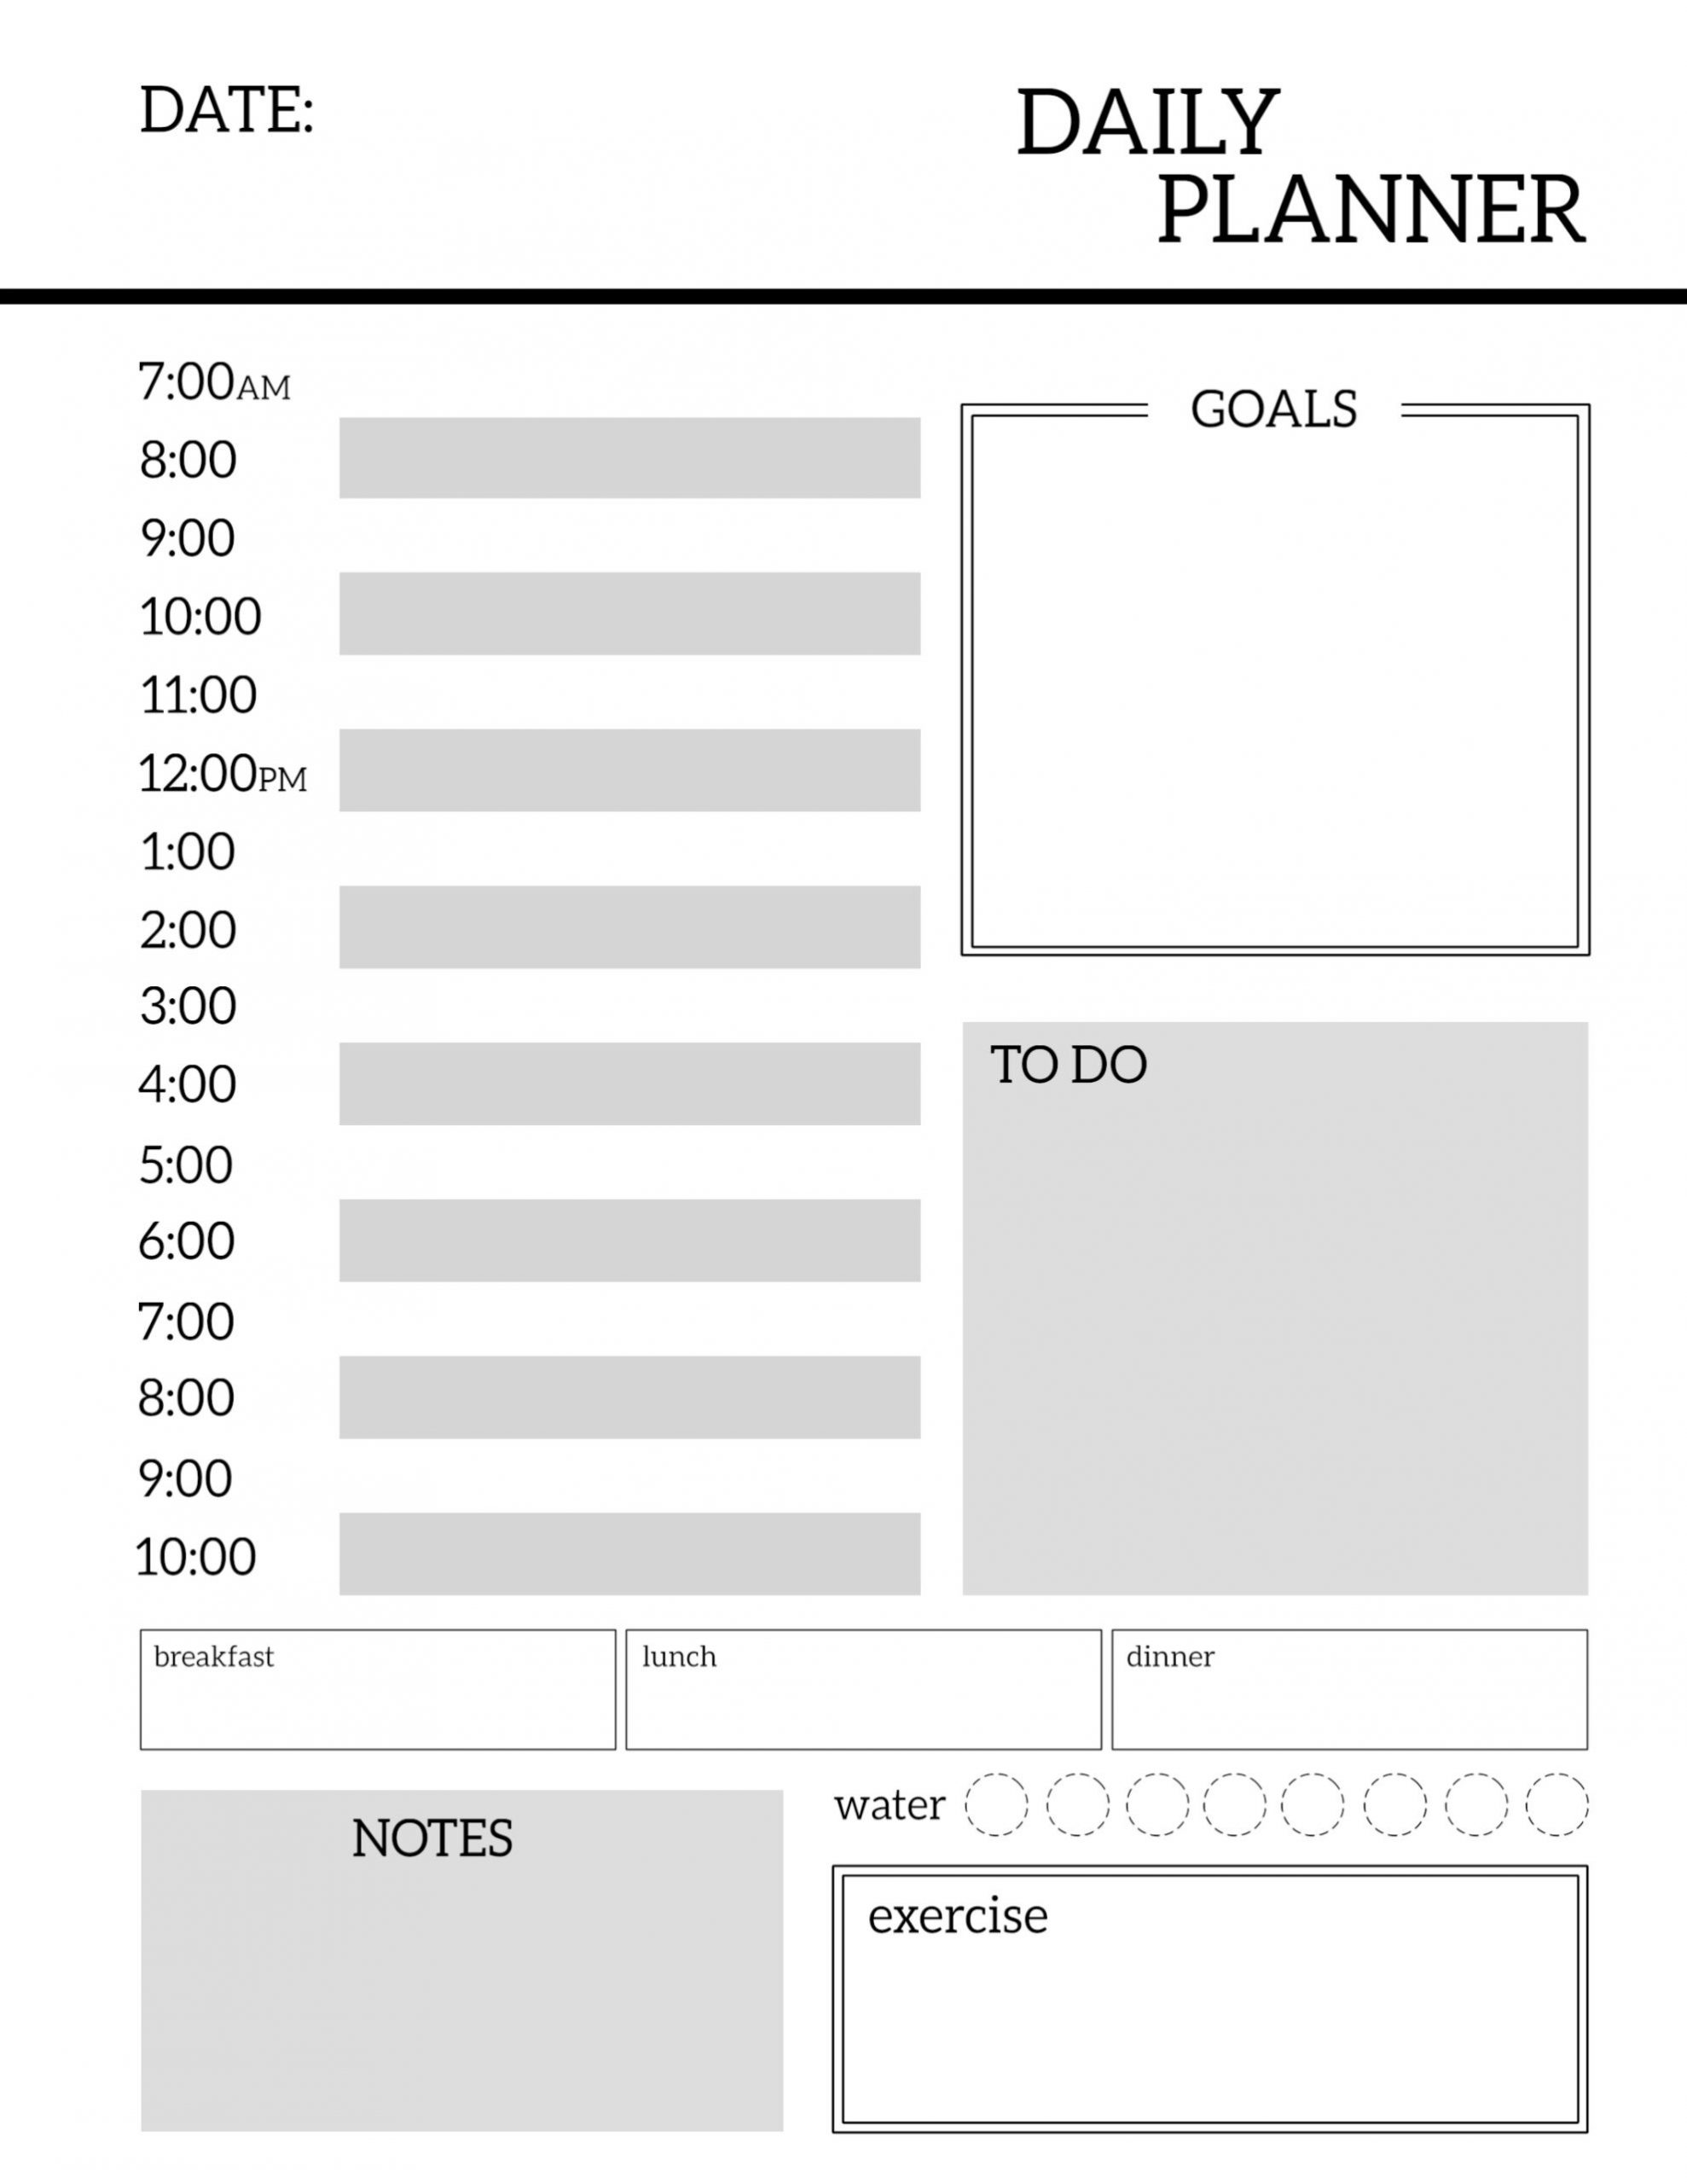 Daily Planner Printable Template Sheets | Paper Trail Design  Blank Dialy Planner